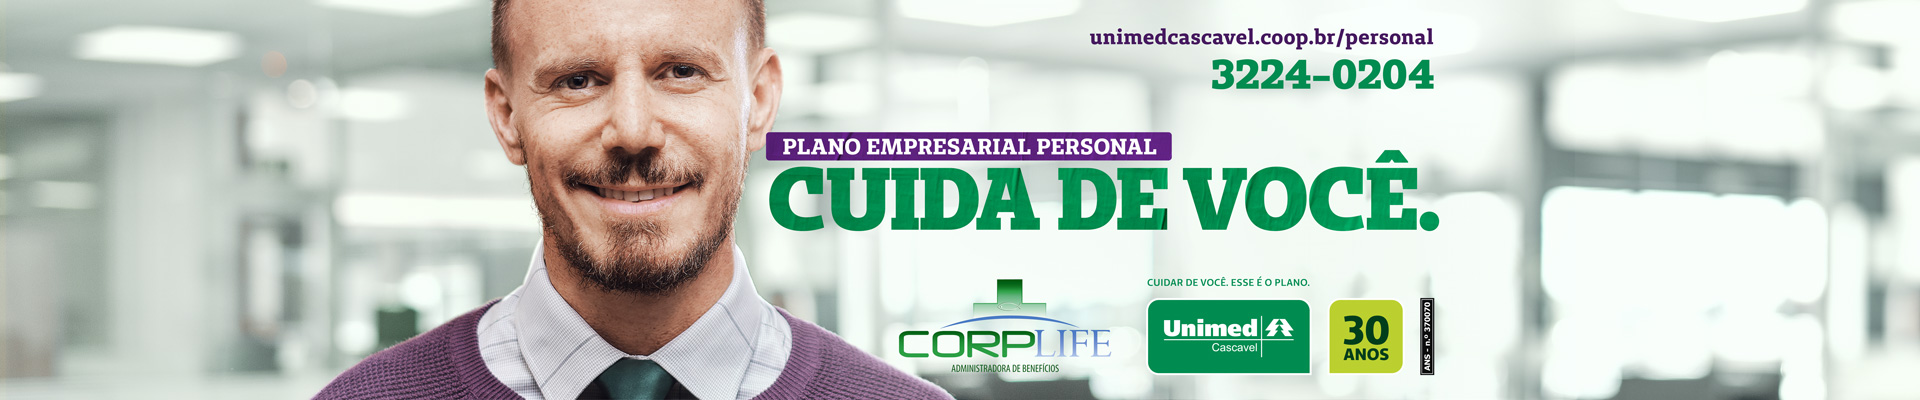 unimed_personal